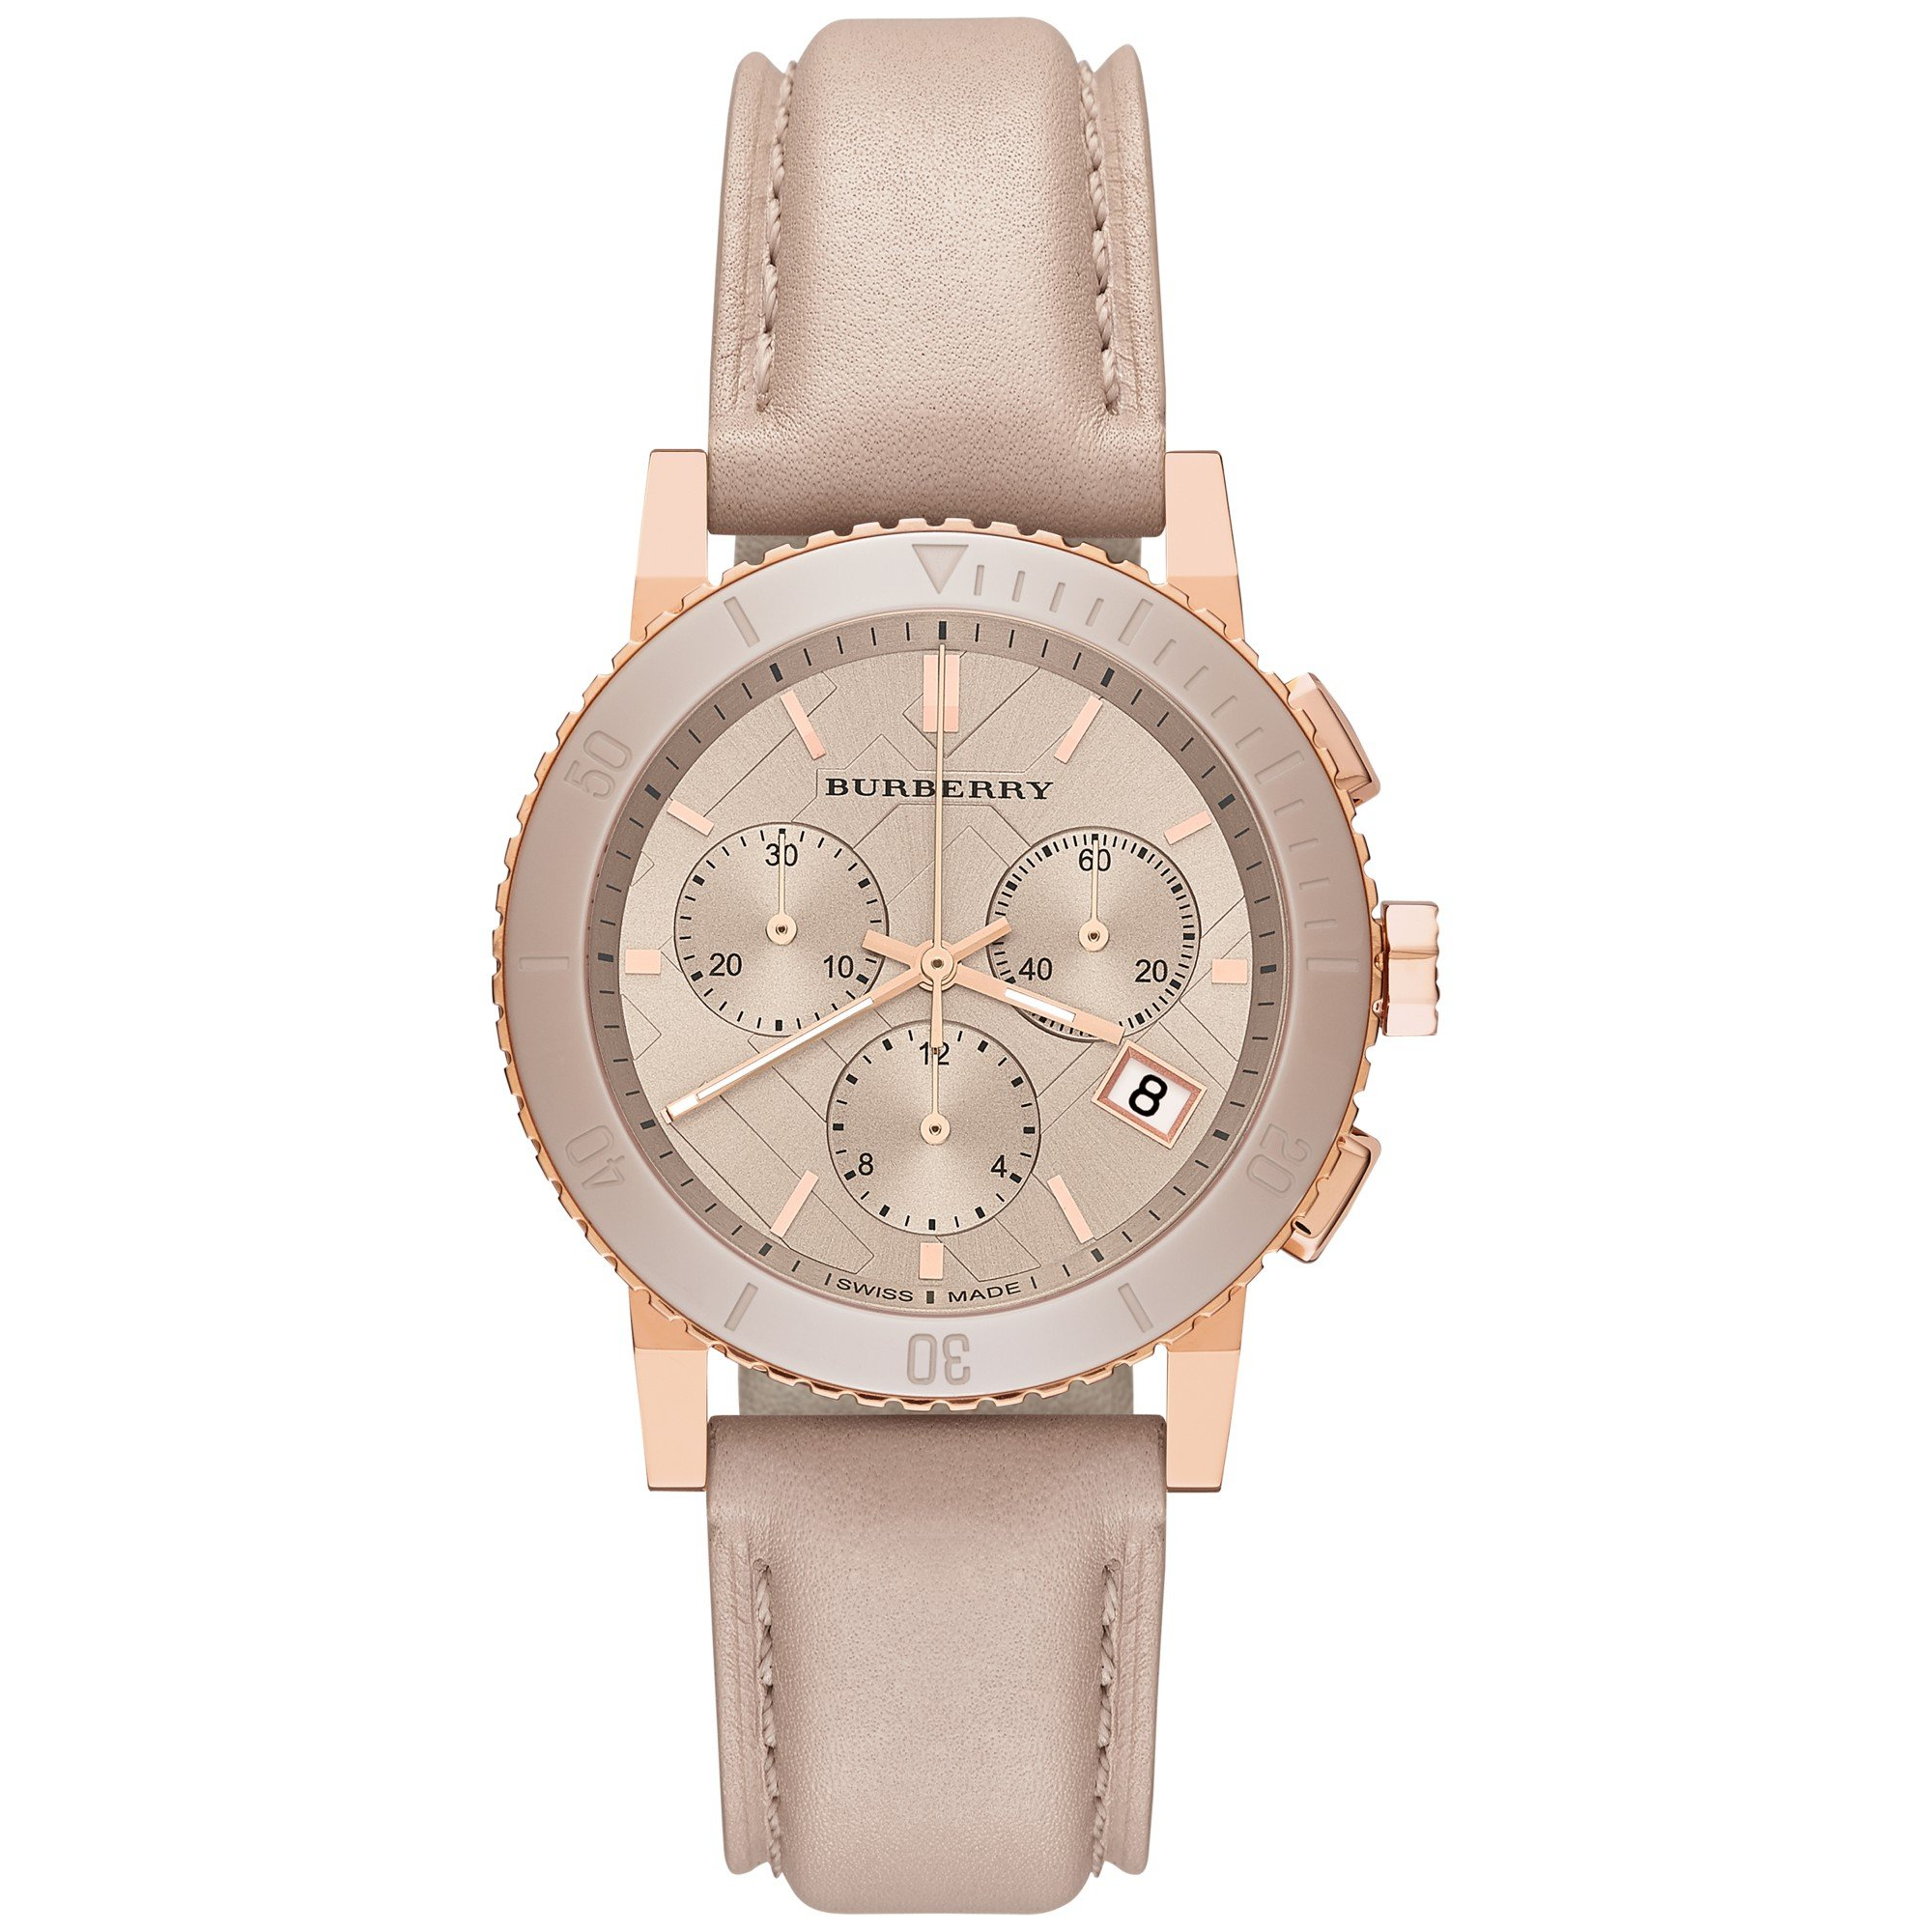 Burberry The City SWISS LUXURY CERAMIC Women 38mm Round Rose Gold Chronograph Watch Nude Leather Band Nude Sunray Date Dial BU9704 by BURBERRY (Image #1)